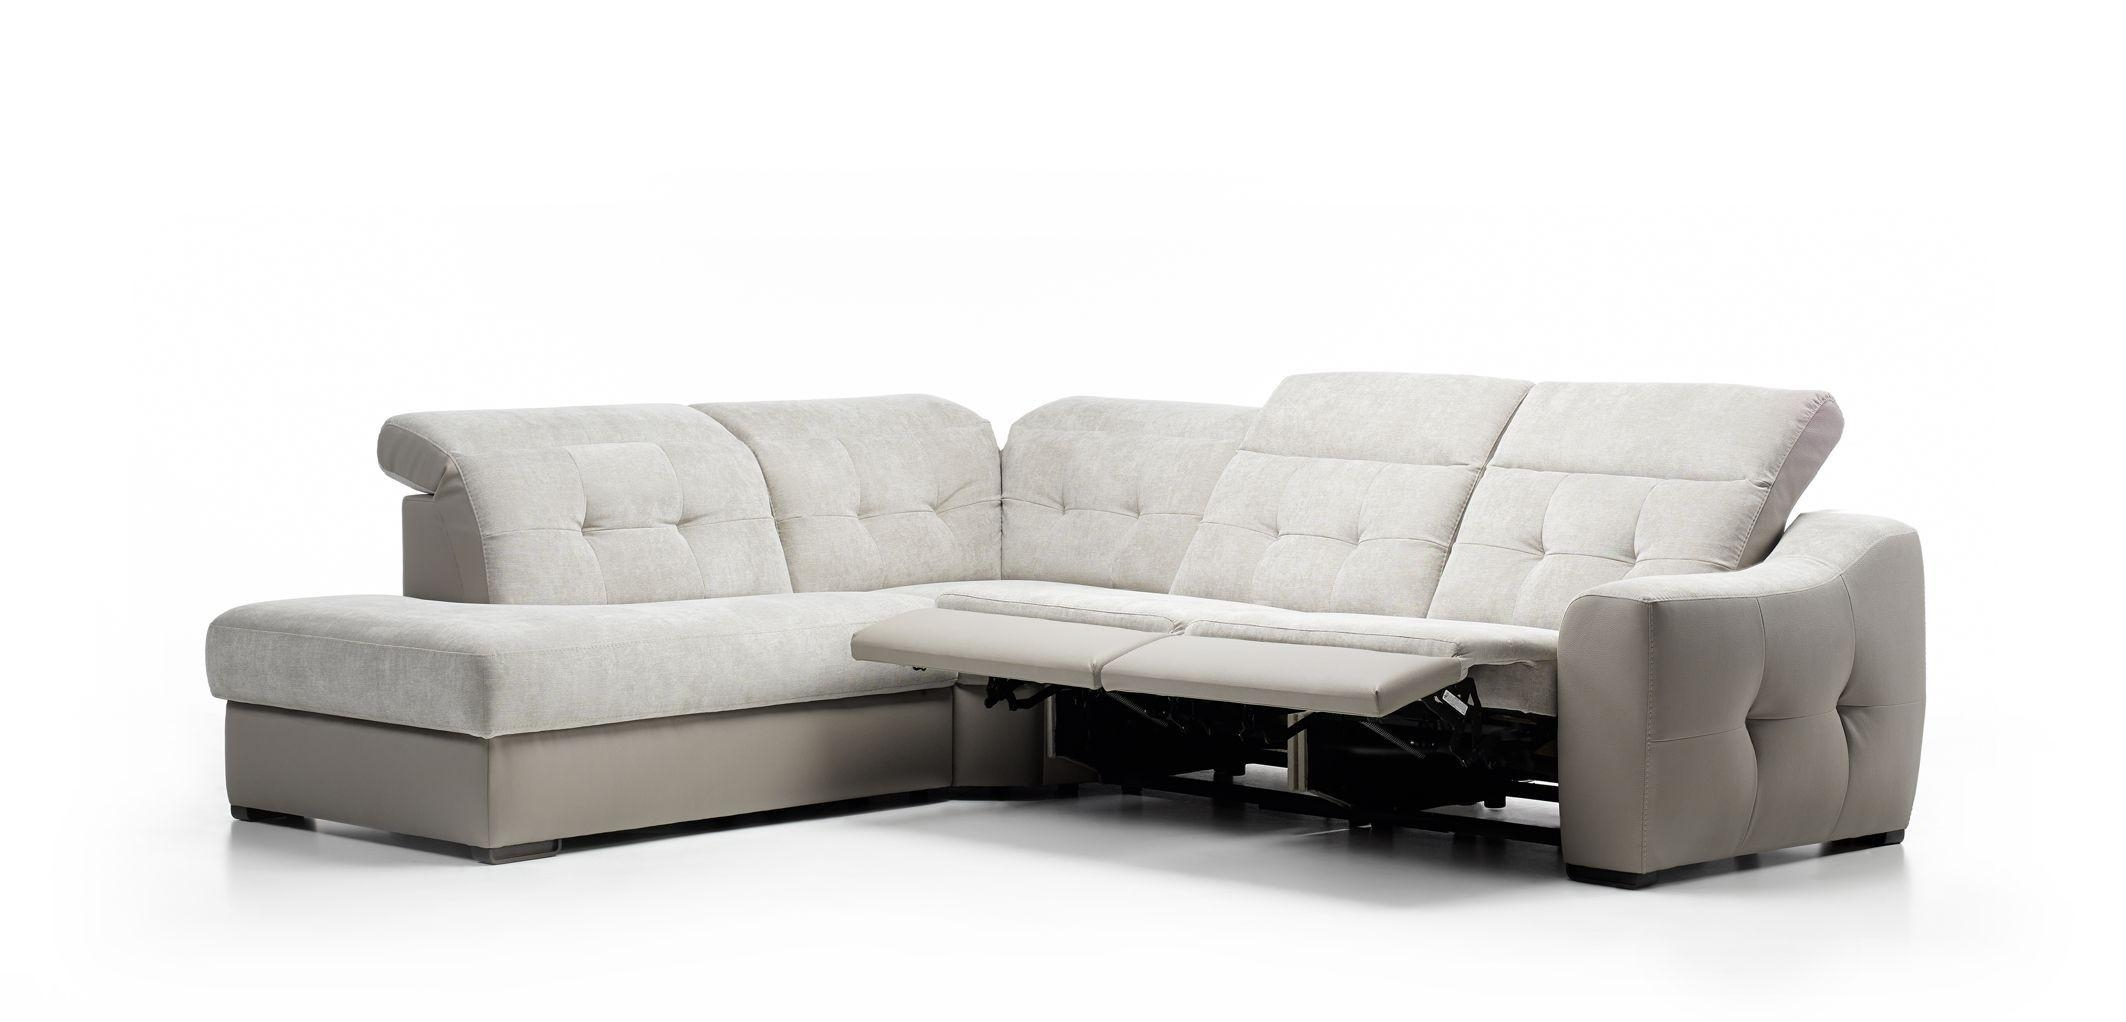 deep leather sectional sofa tyson 15 best ideas seat